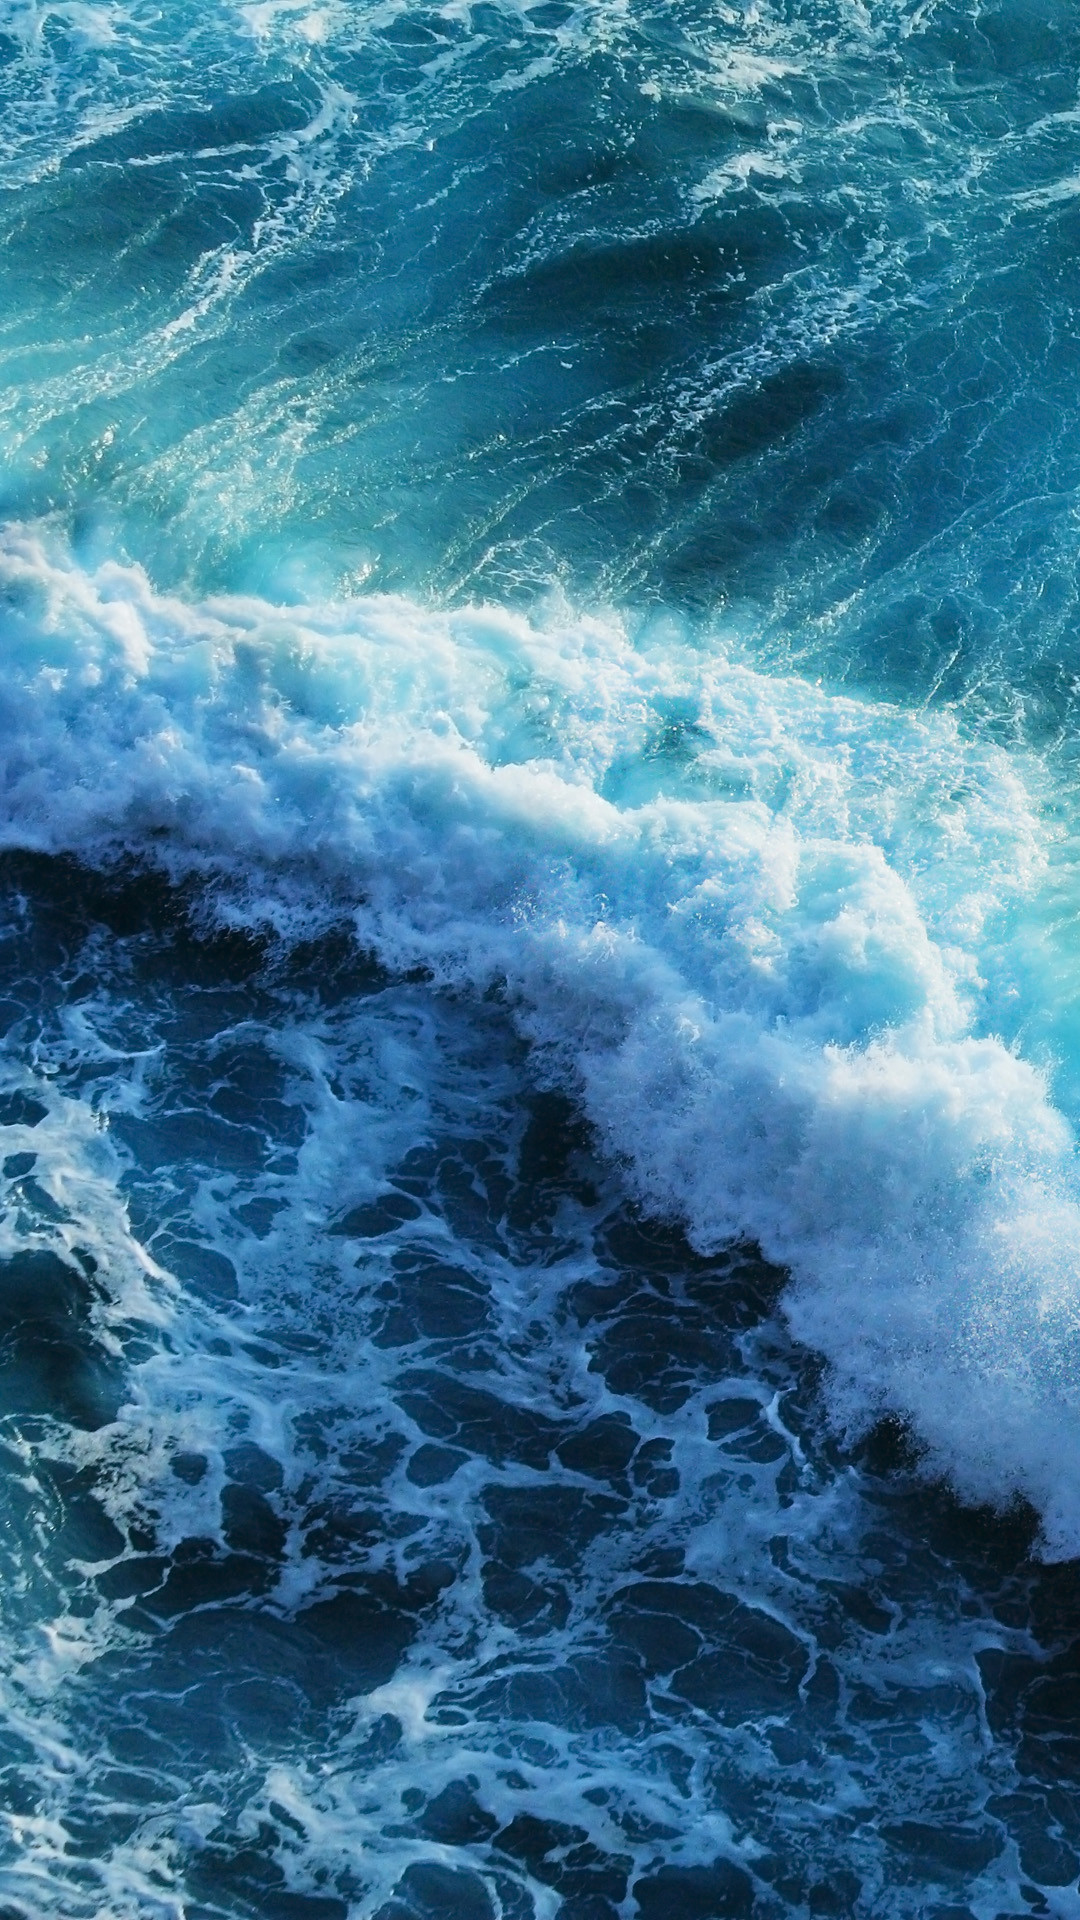 Ocean Water Wallpaper (63+ images)